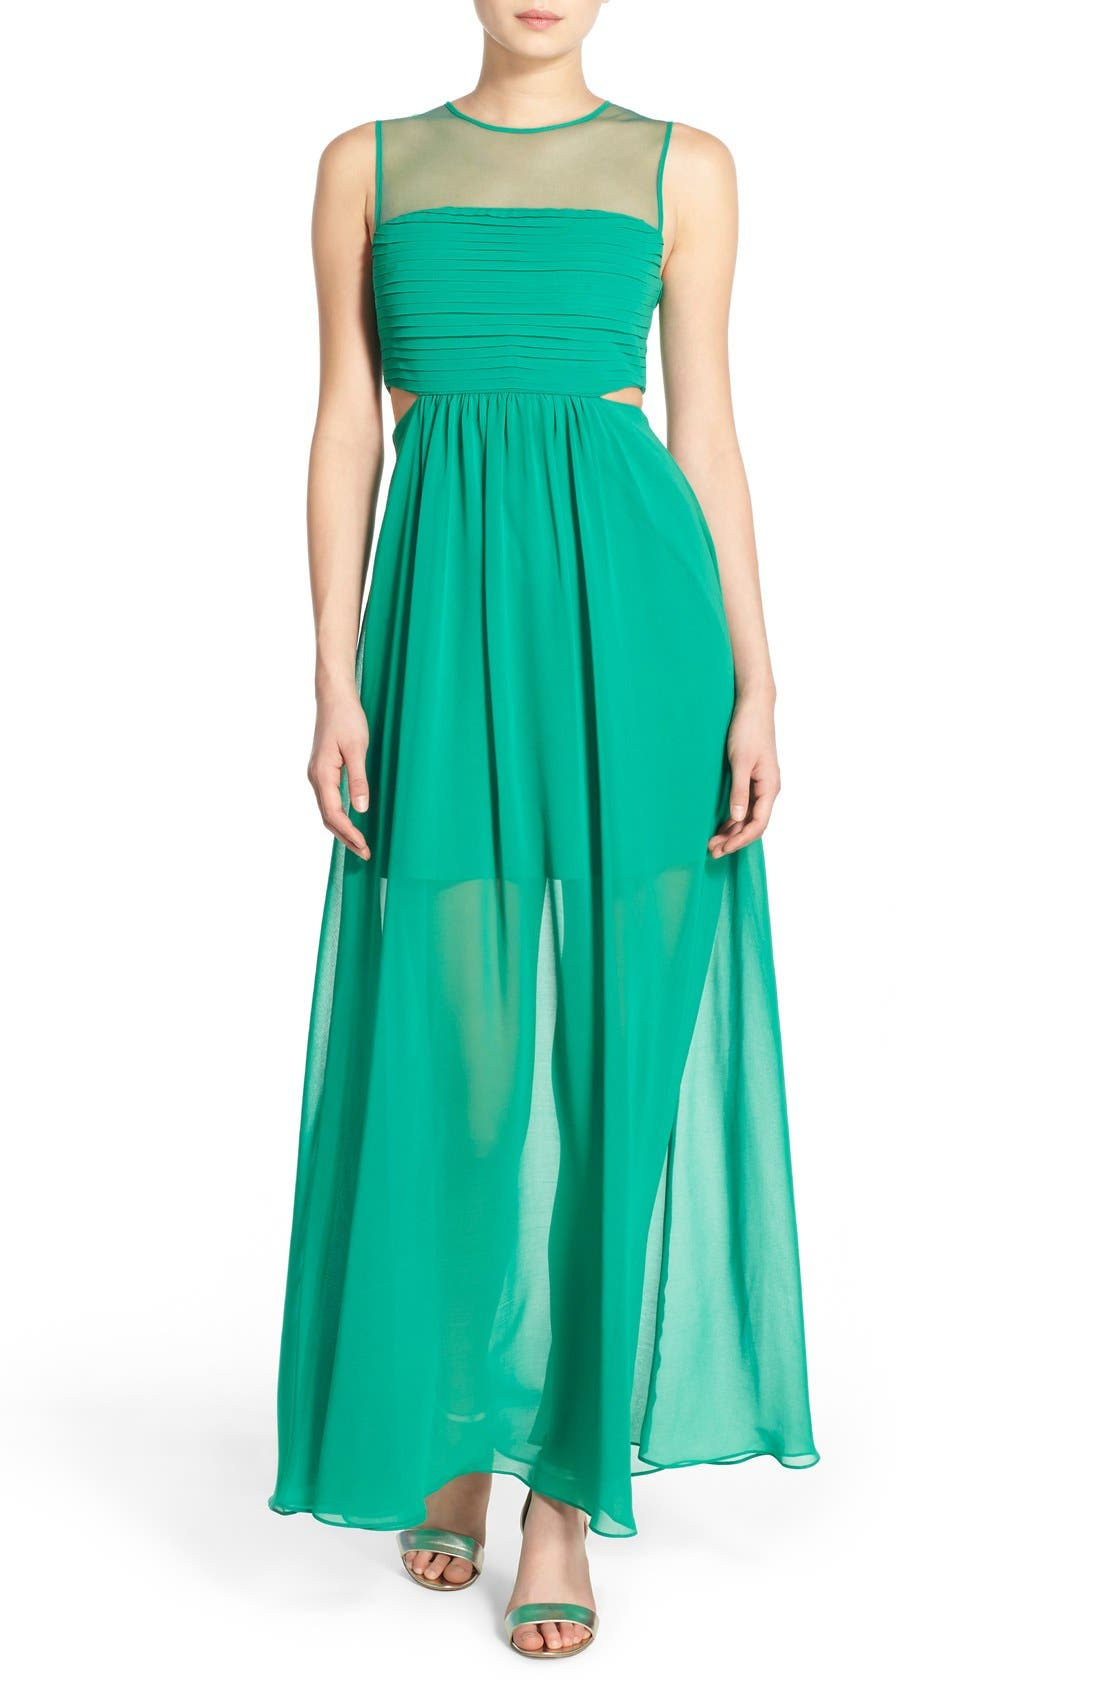 Alternate Image 1 Selected - Soloiste 'Jena' Illusion Yoke Maxi Dress